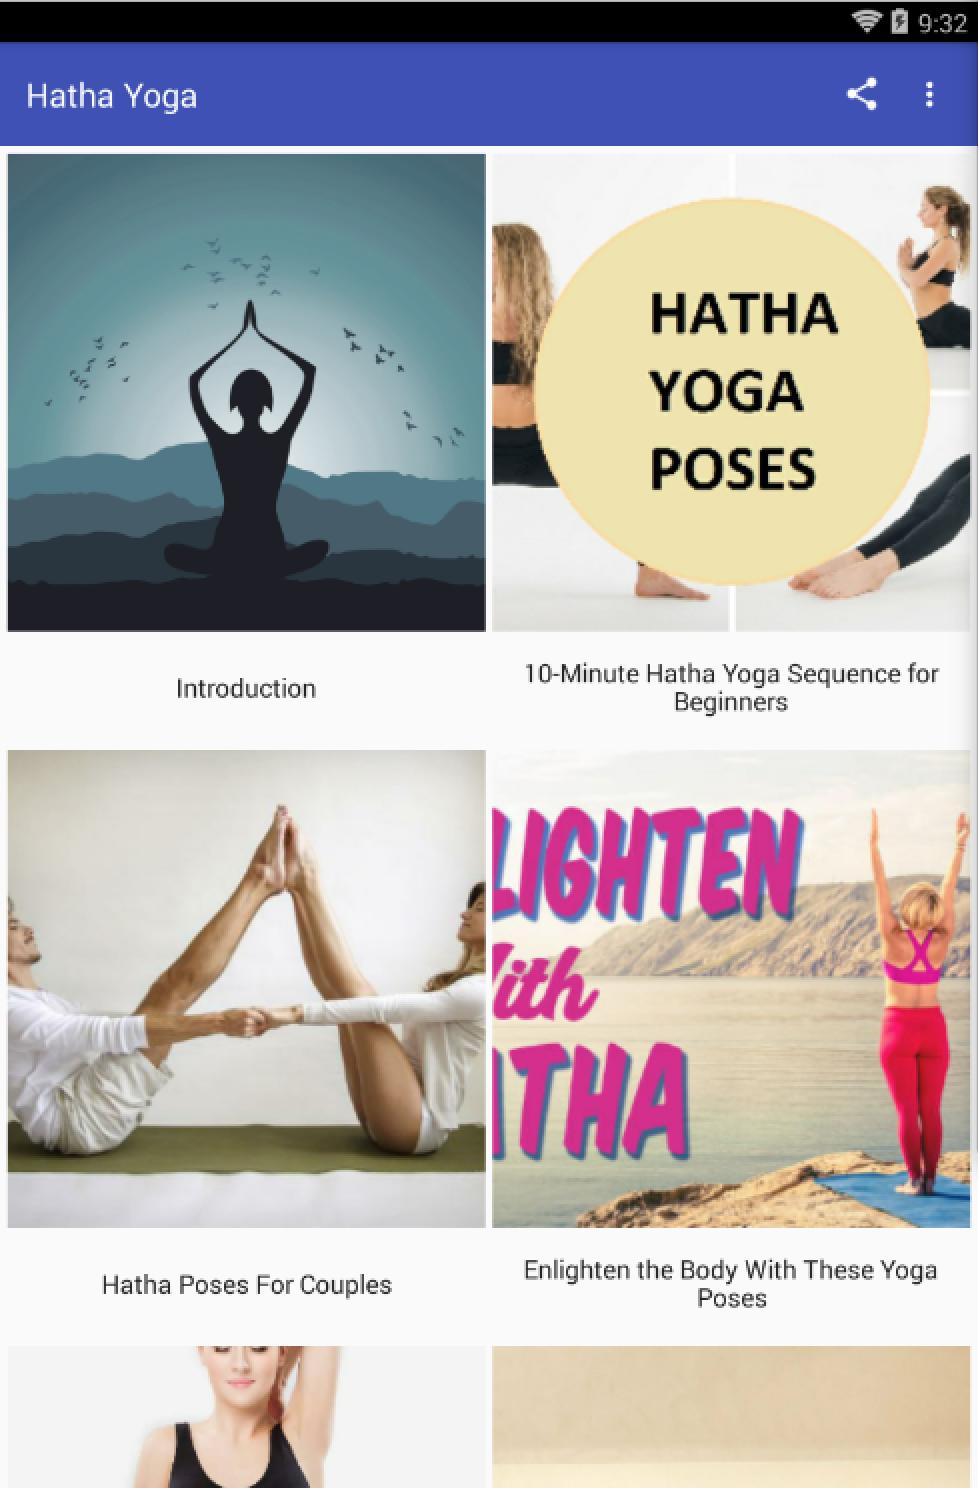 HATHA YOGA for Android - APK Download